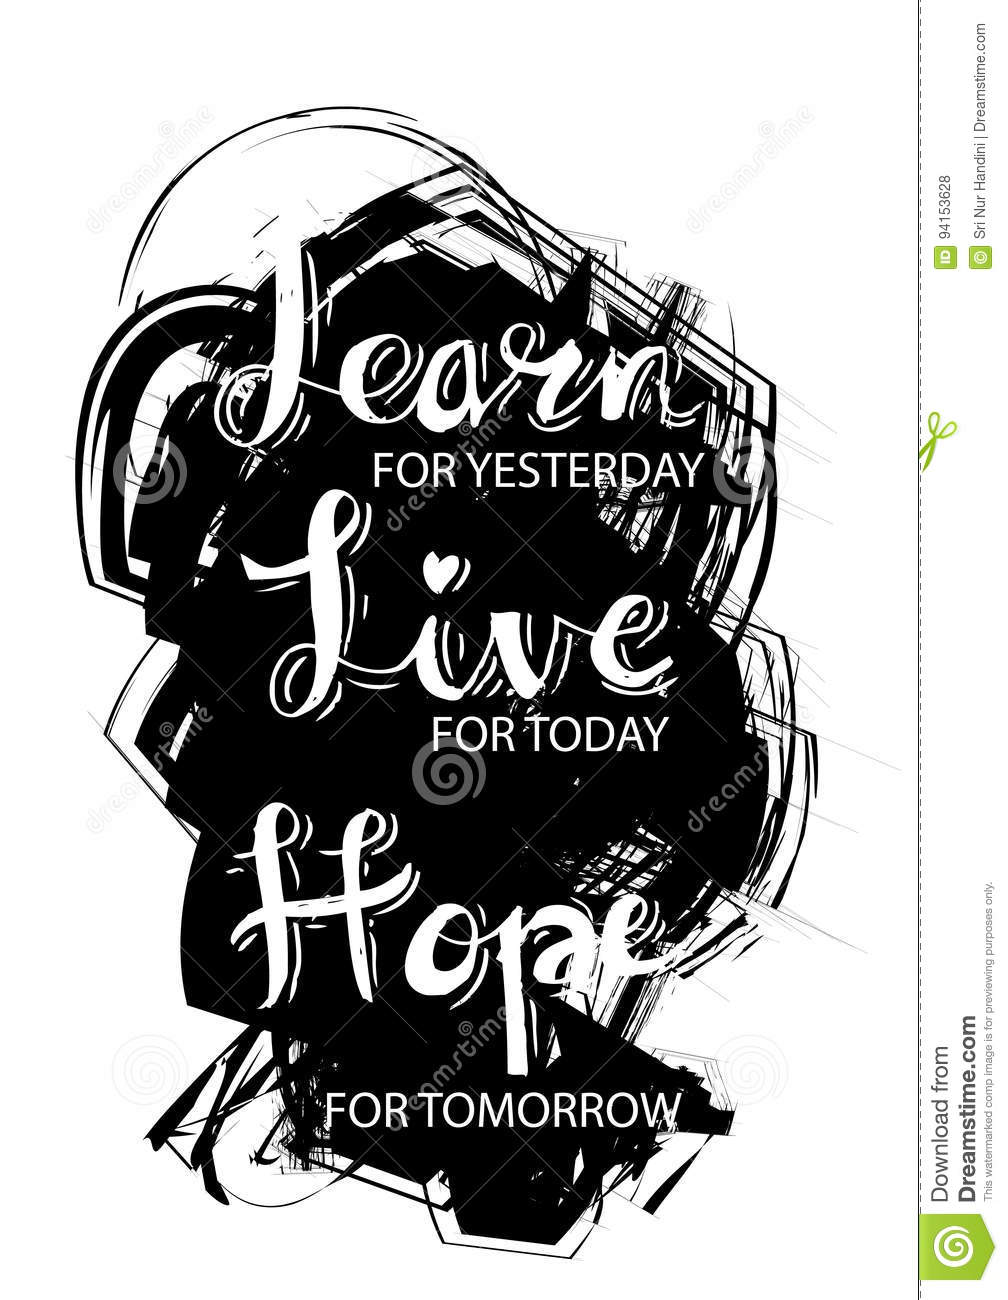 Live For Today Quotes Learn From Yesterdaylive For Todayhope For Tomorrowstock